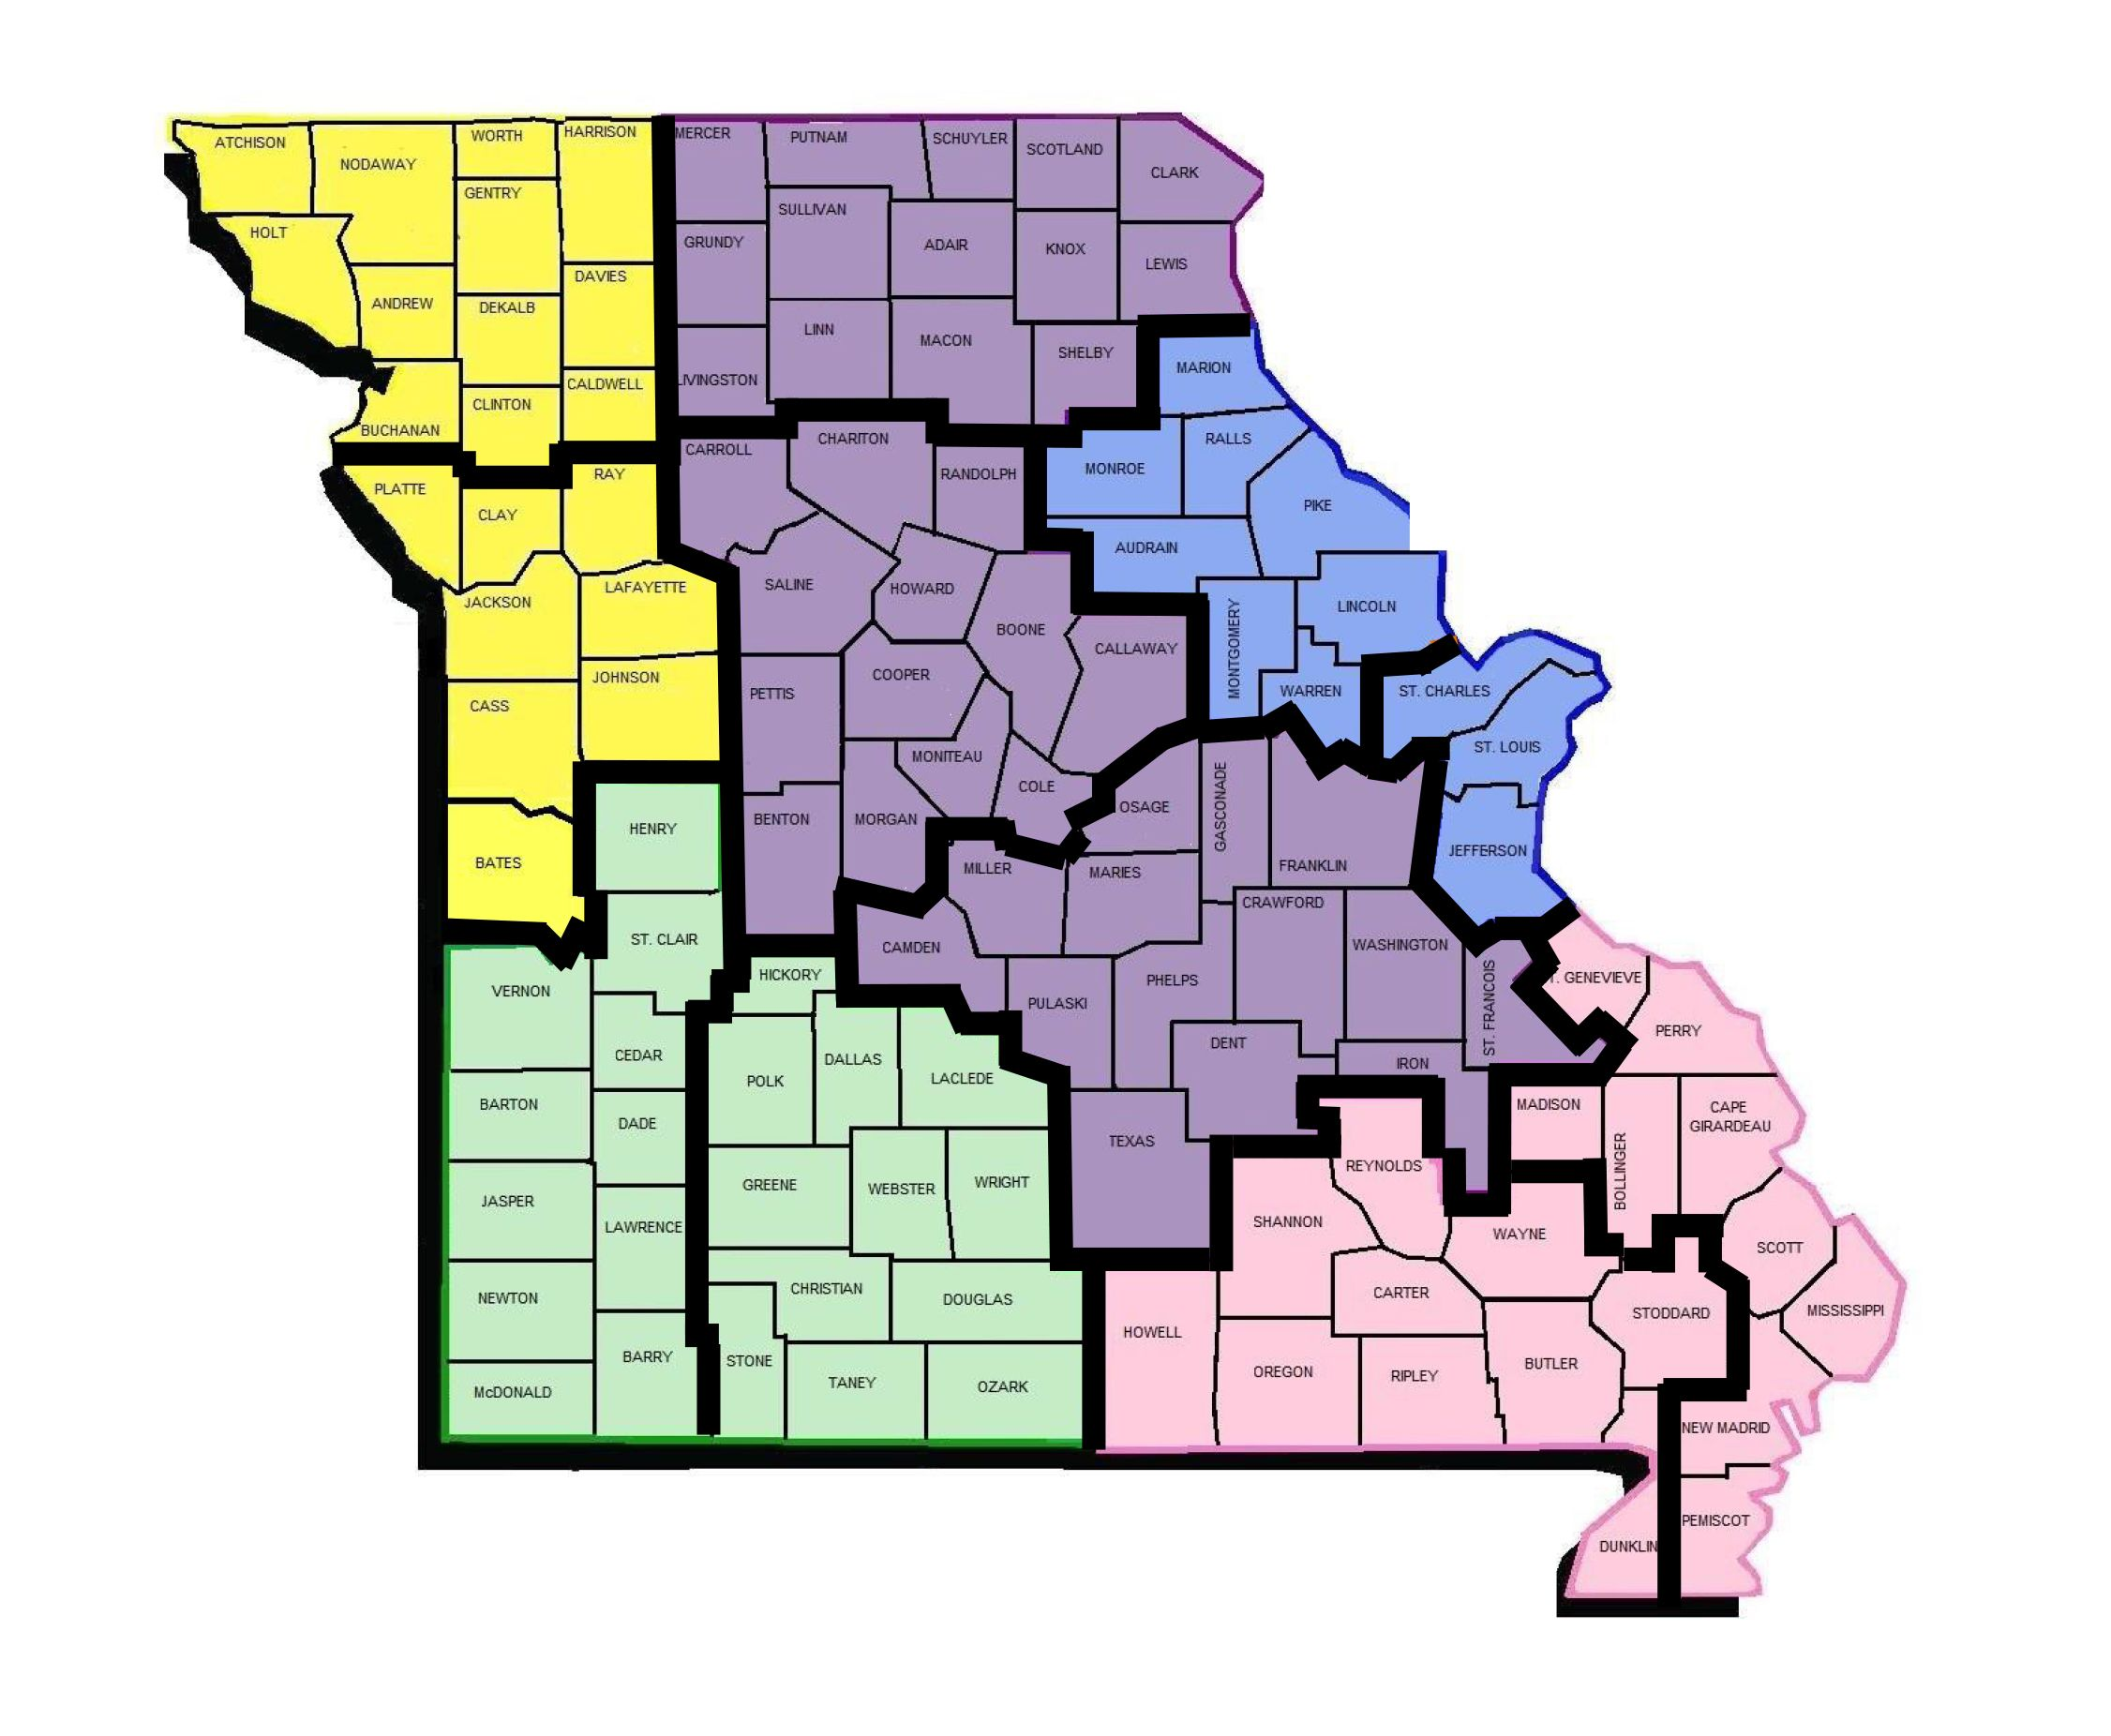 Map of regional offices and habilitation centers